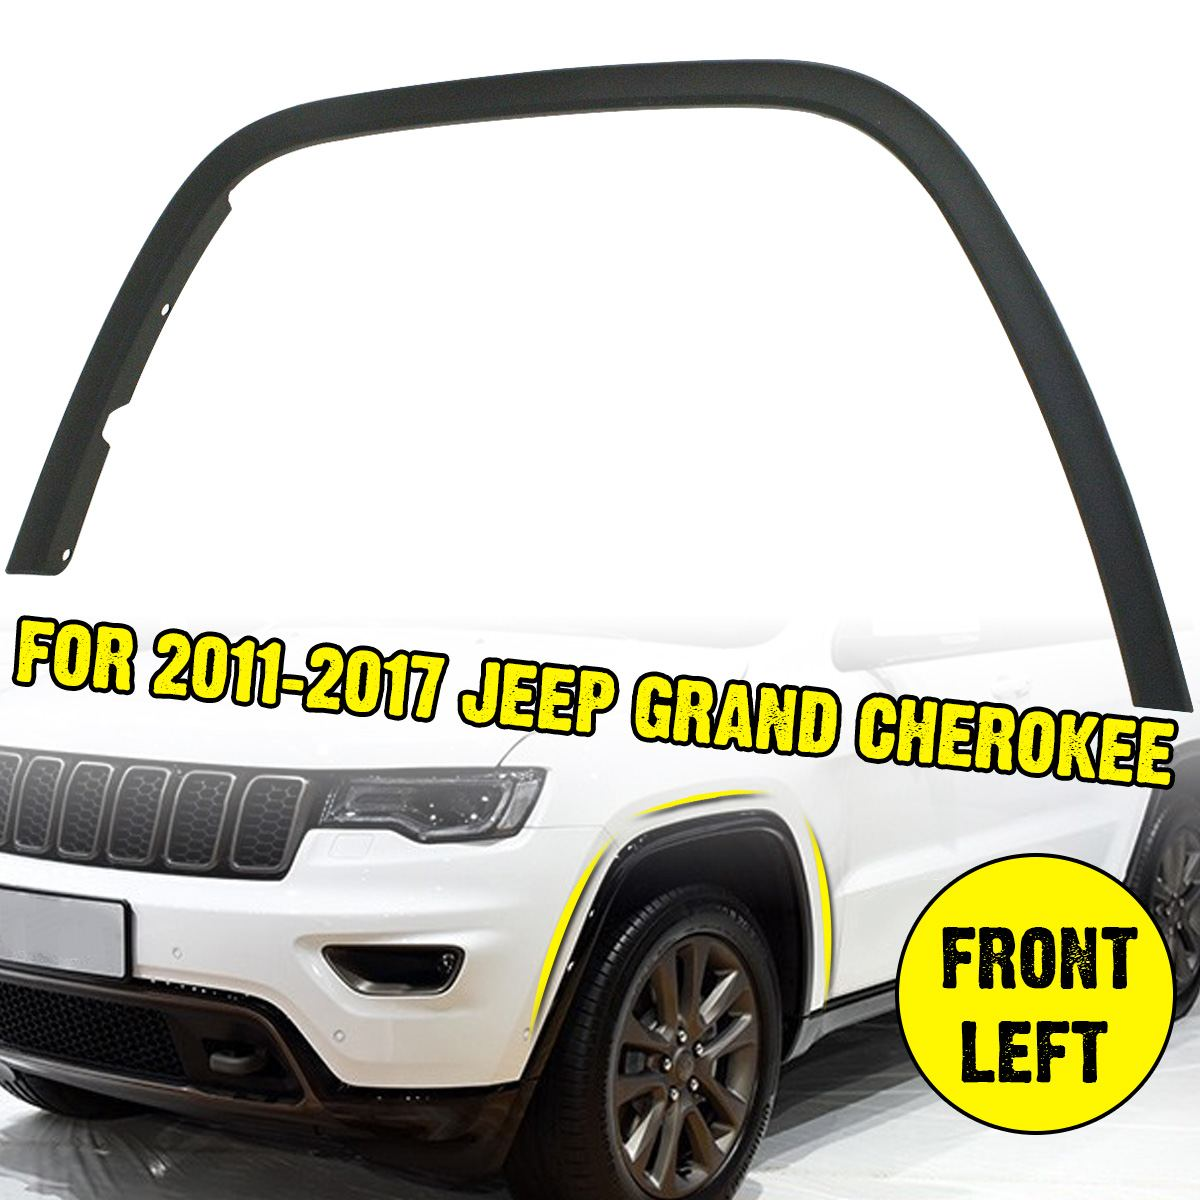 Car Front Left Fender Flares Arch Wheel Auto Mudguard Fender Flare Protector Cover Mud Guard For Jeep Grand Cherokee|Mudguards| |  - title=